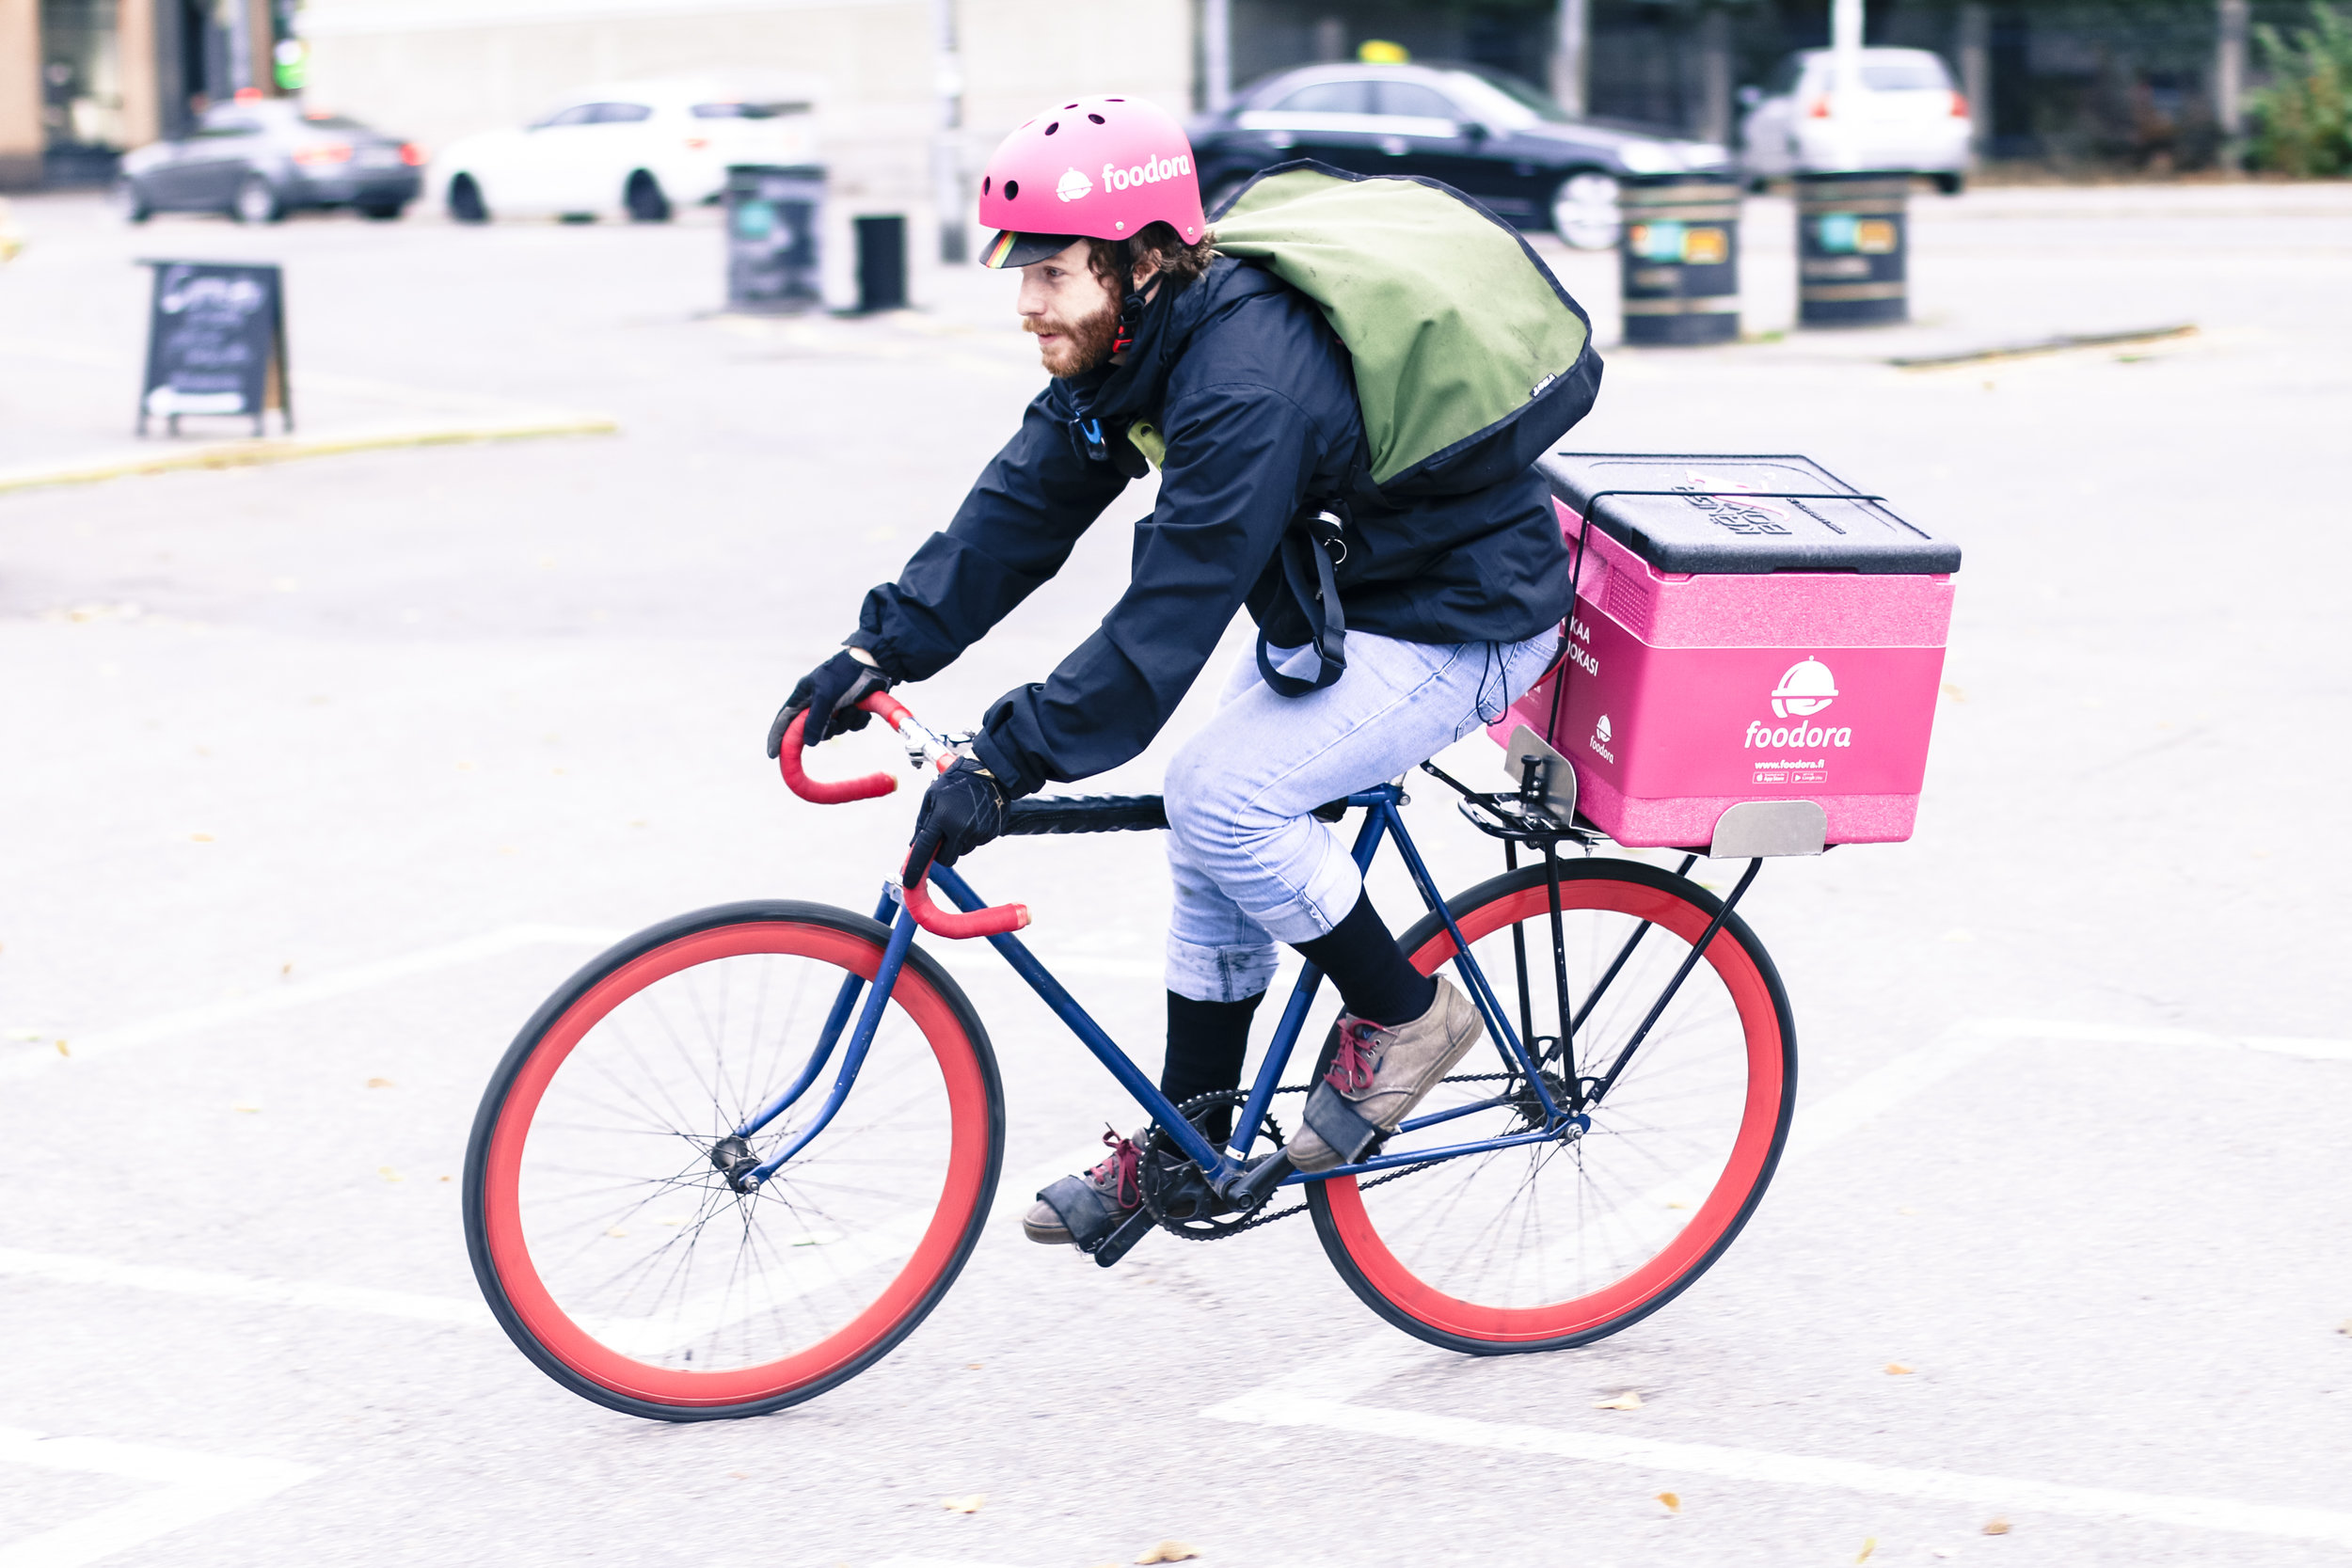 Foodora - a bicyle-based delivery service bringing local favourites to your door